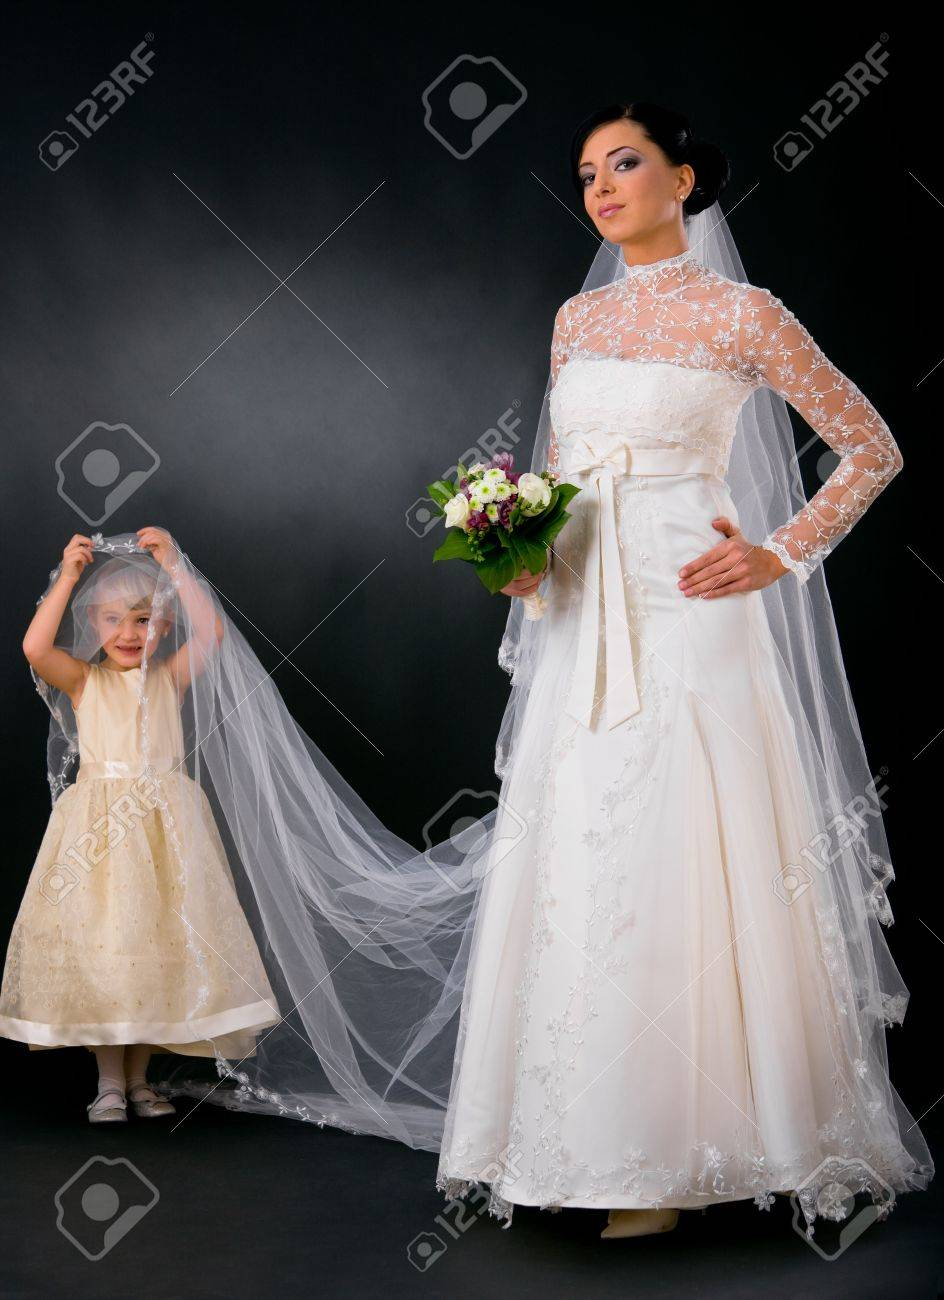 Bride posing in romantic white wedding dress, holding bouquet of flowers, little bridesmaid holding her veil. Stock Photo - 6508782